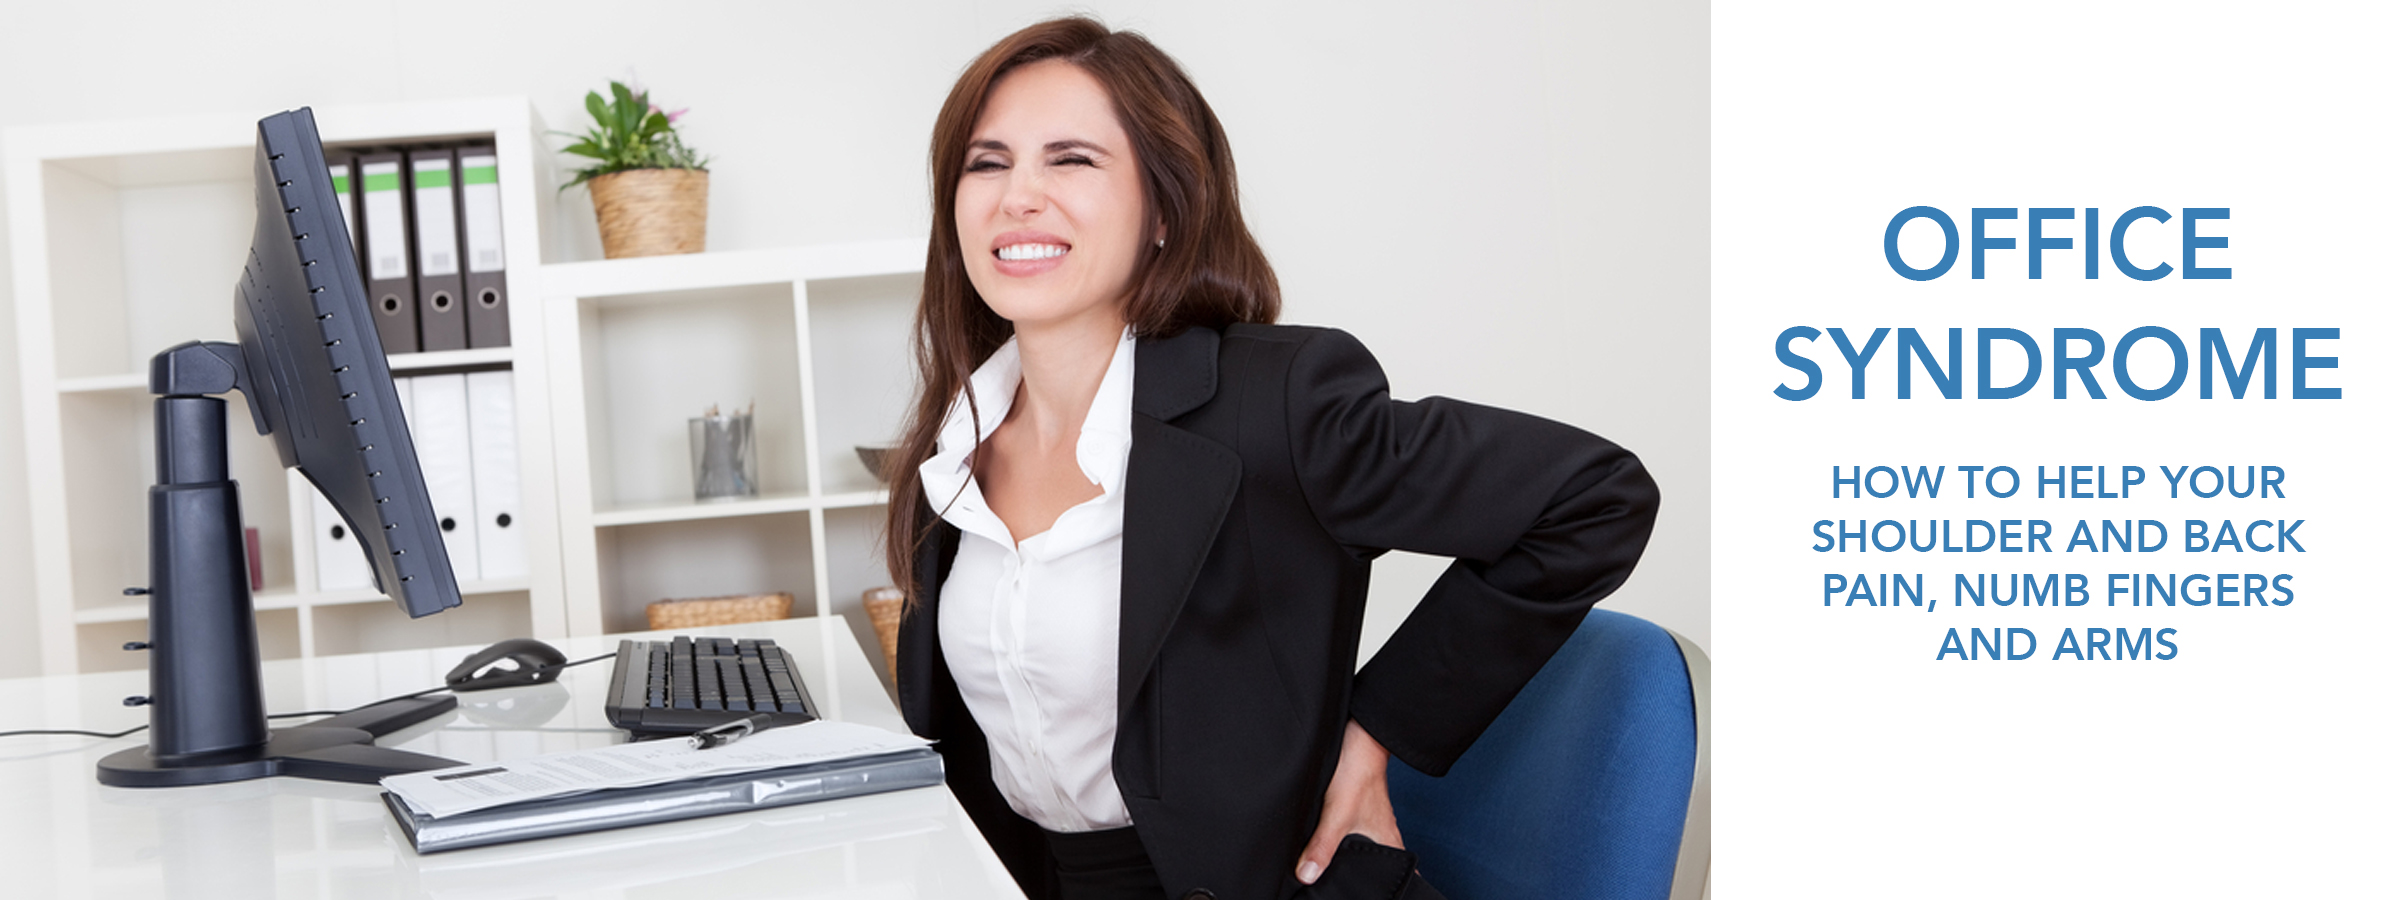 office syndrome treatment at new jersey